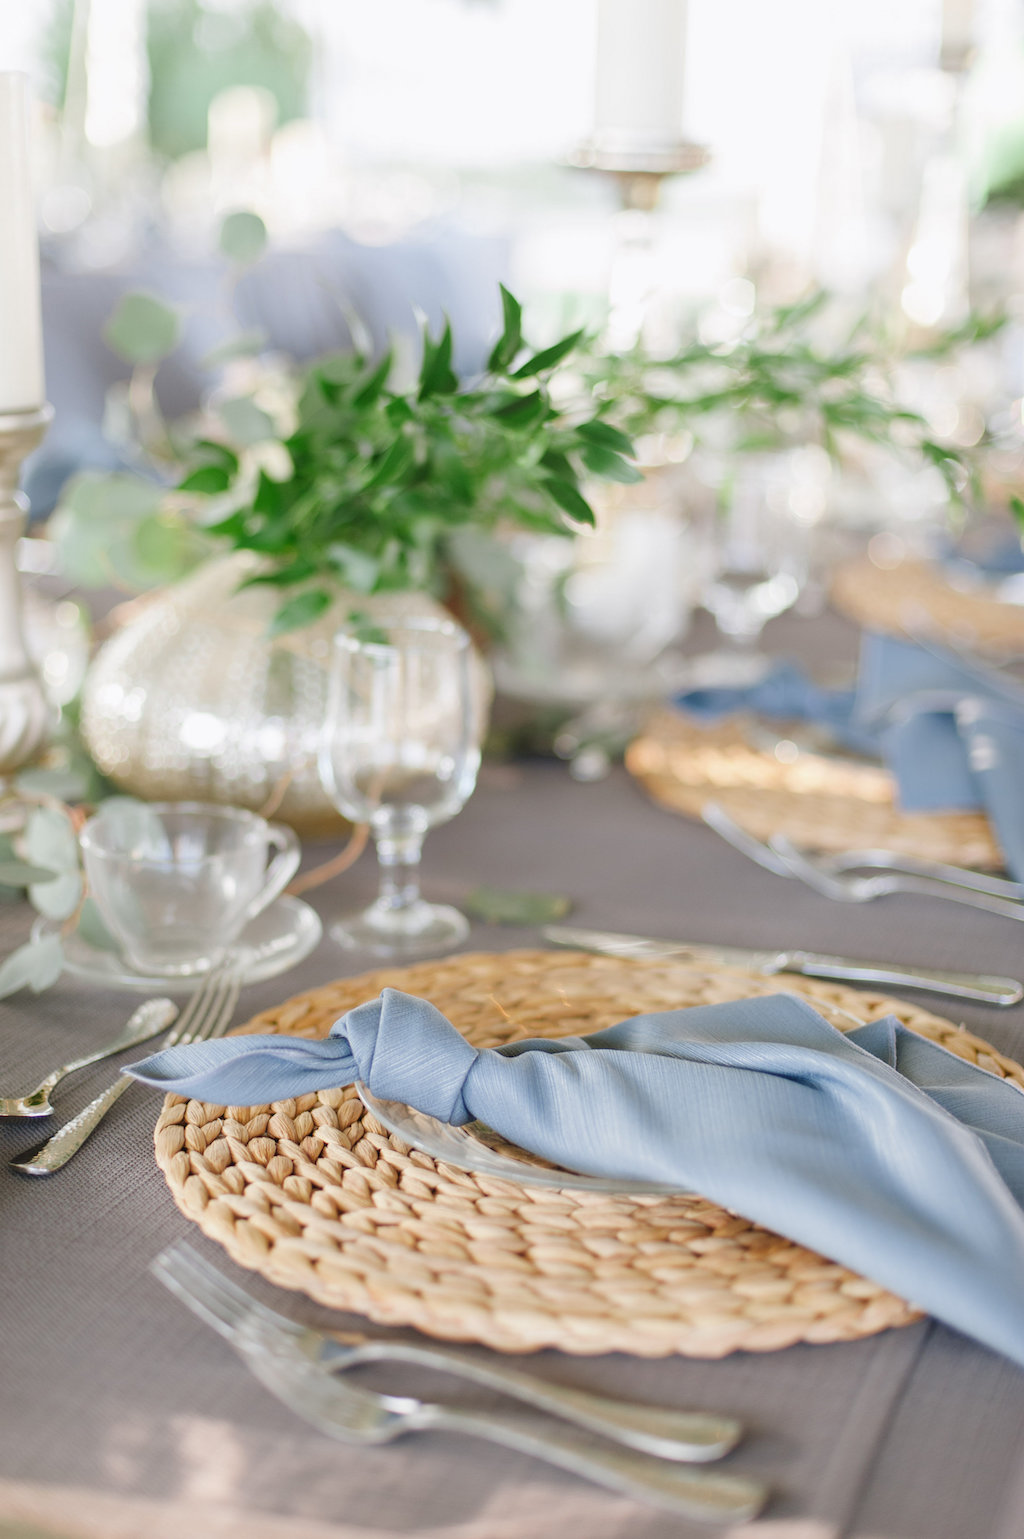 Outdoor Tented Wedding Reception with Organic Greenery Inspired Decor, Long Feasting Tables, Wicker Placemat Chargers and Candle Centerpieces | Sarasota Wedding Planner Jennifer Matteo Event Planning